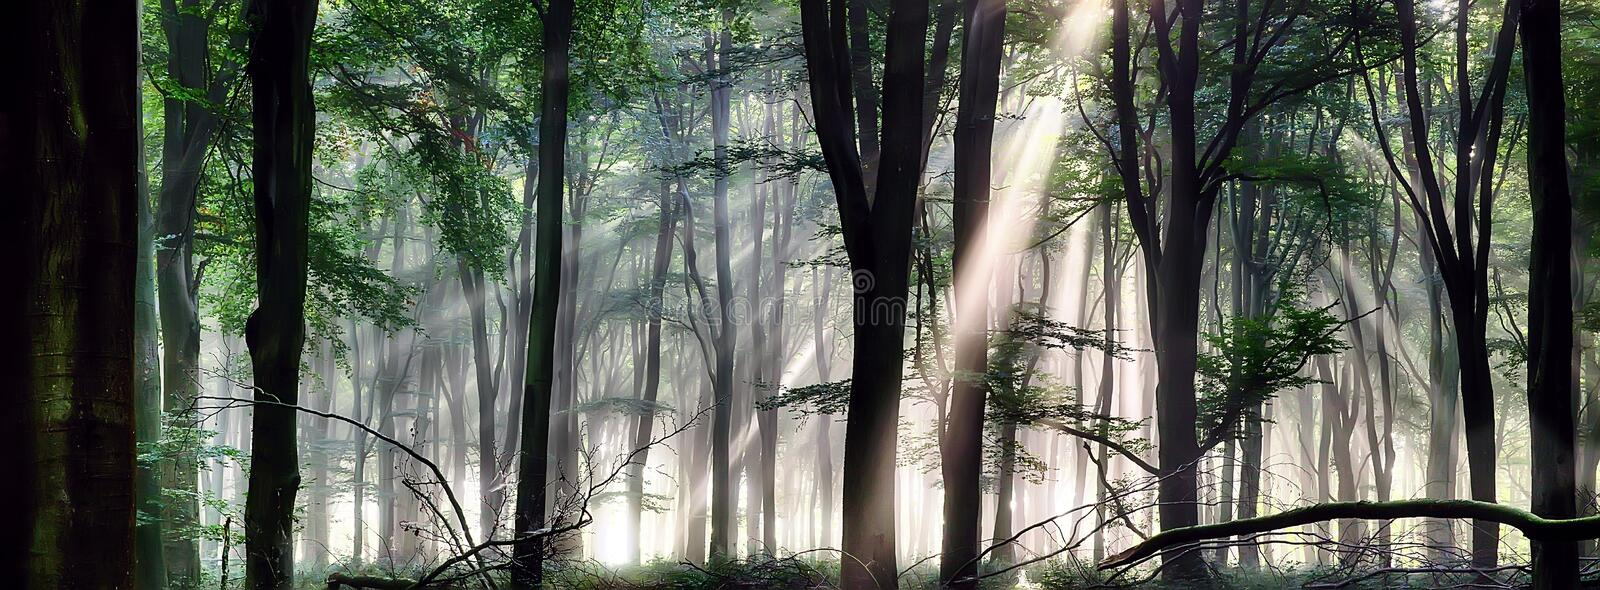 Deep forest morning light royalty free stock photography